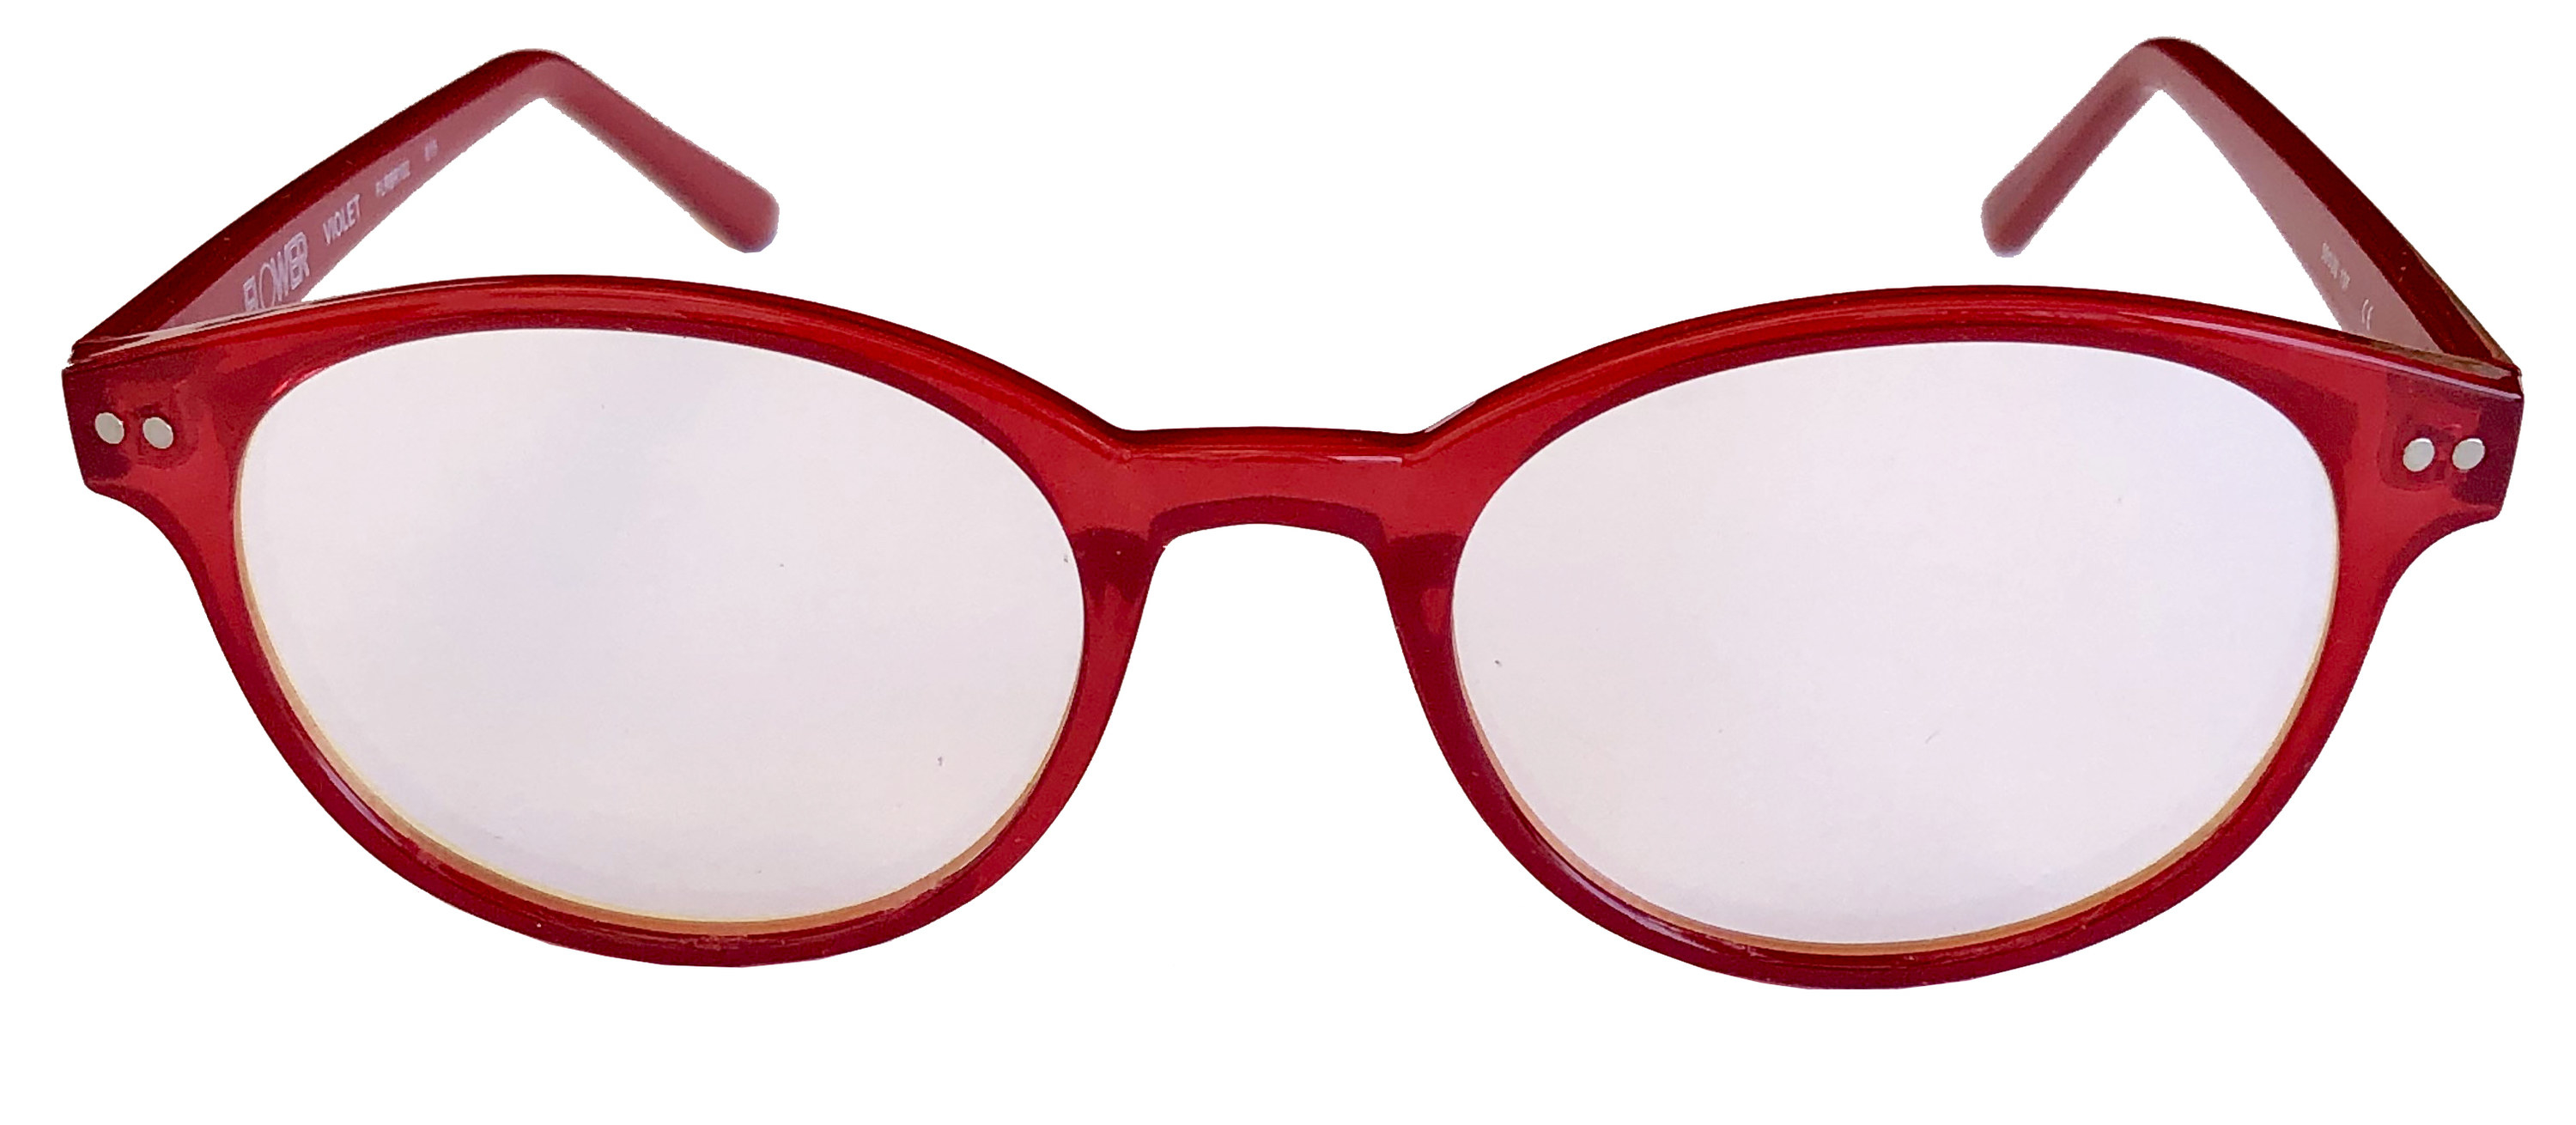 The red glasses